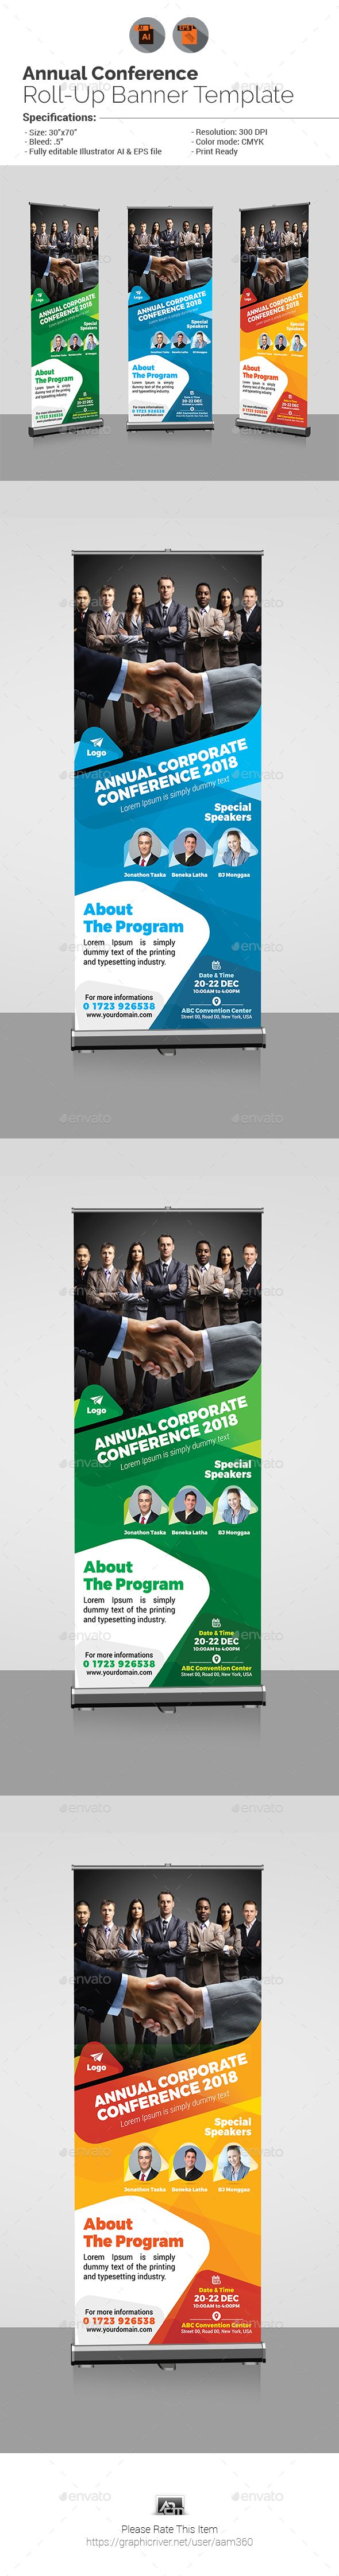 Annual Corporate Conference Roll-up Banner Design Template - Signage Ads Banner Design Print Template Vector EPS, AI Illustrator. Download here: https://graphicriver.net/item/annual-corporate-conference-rollup-banner/19447133?ref=yinkira